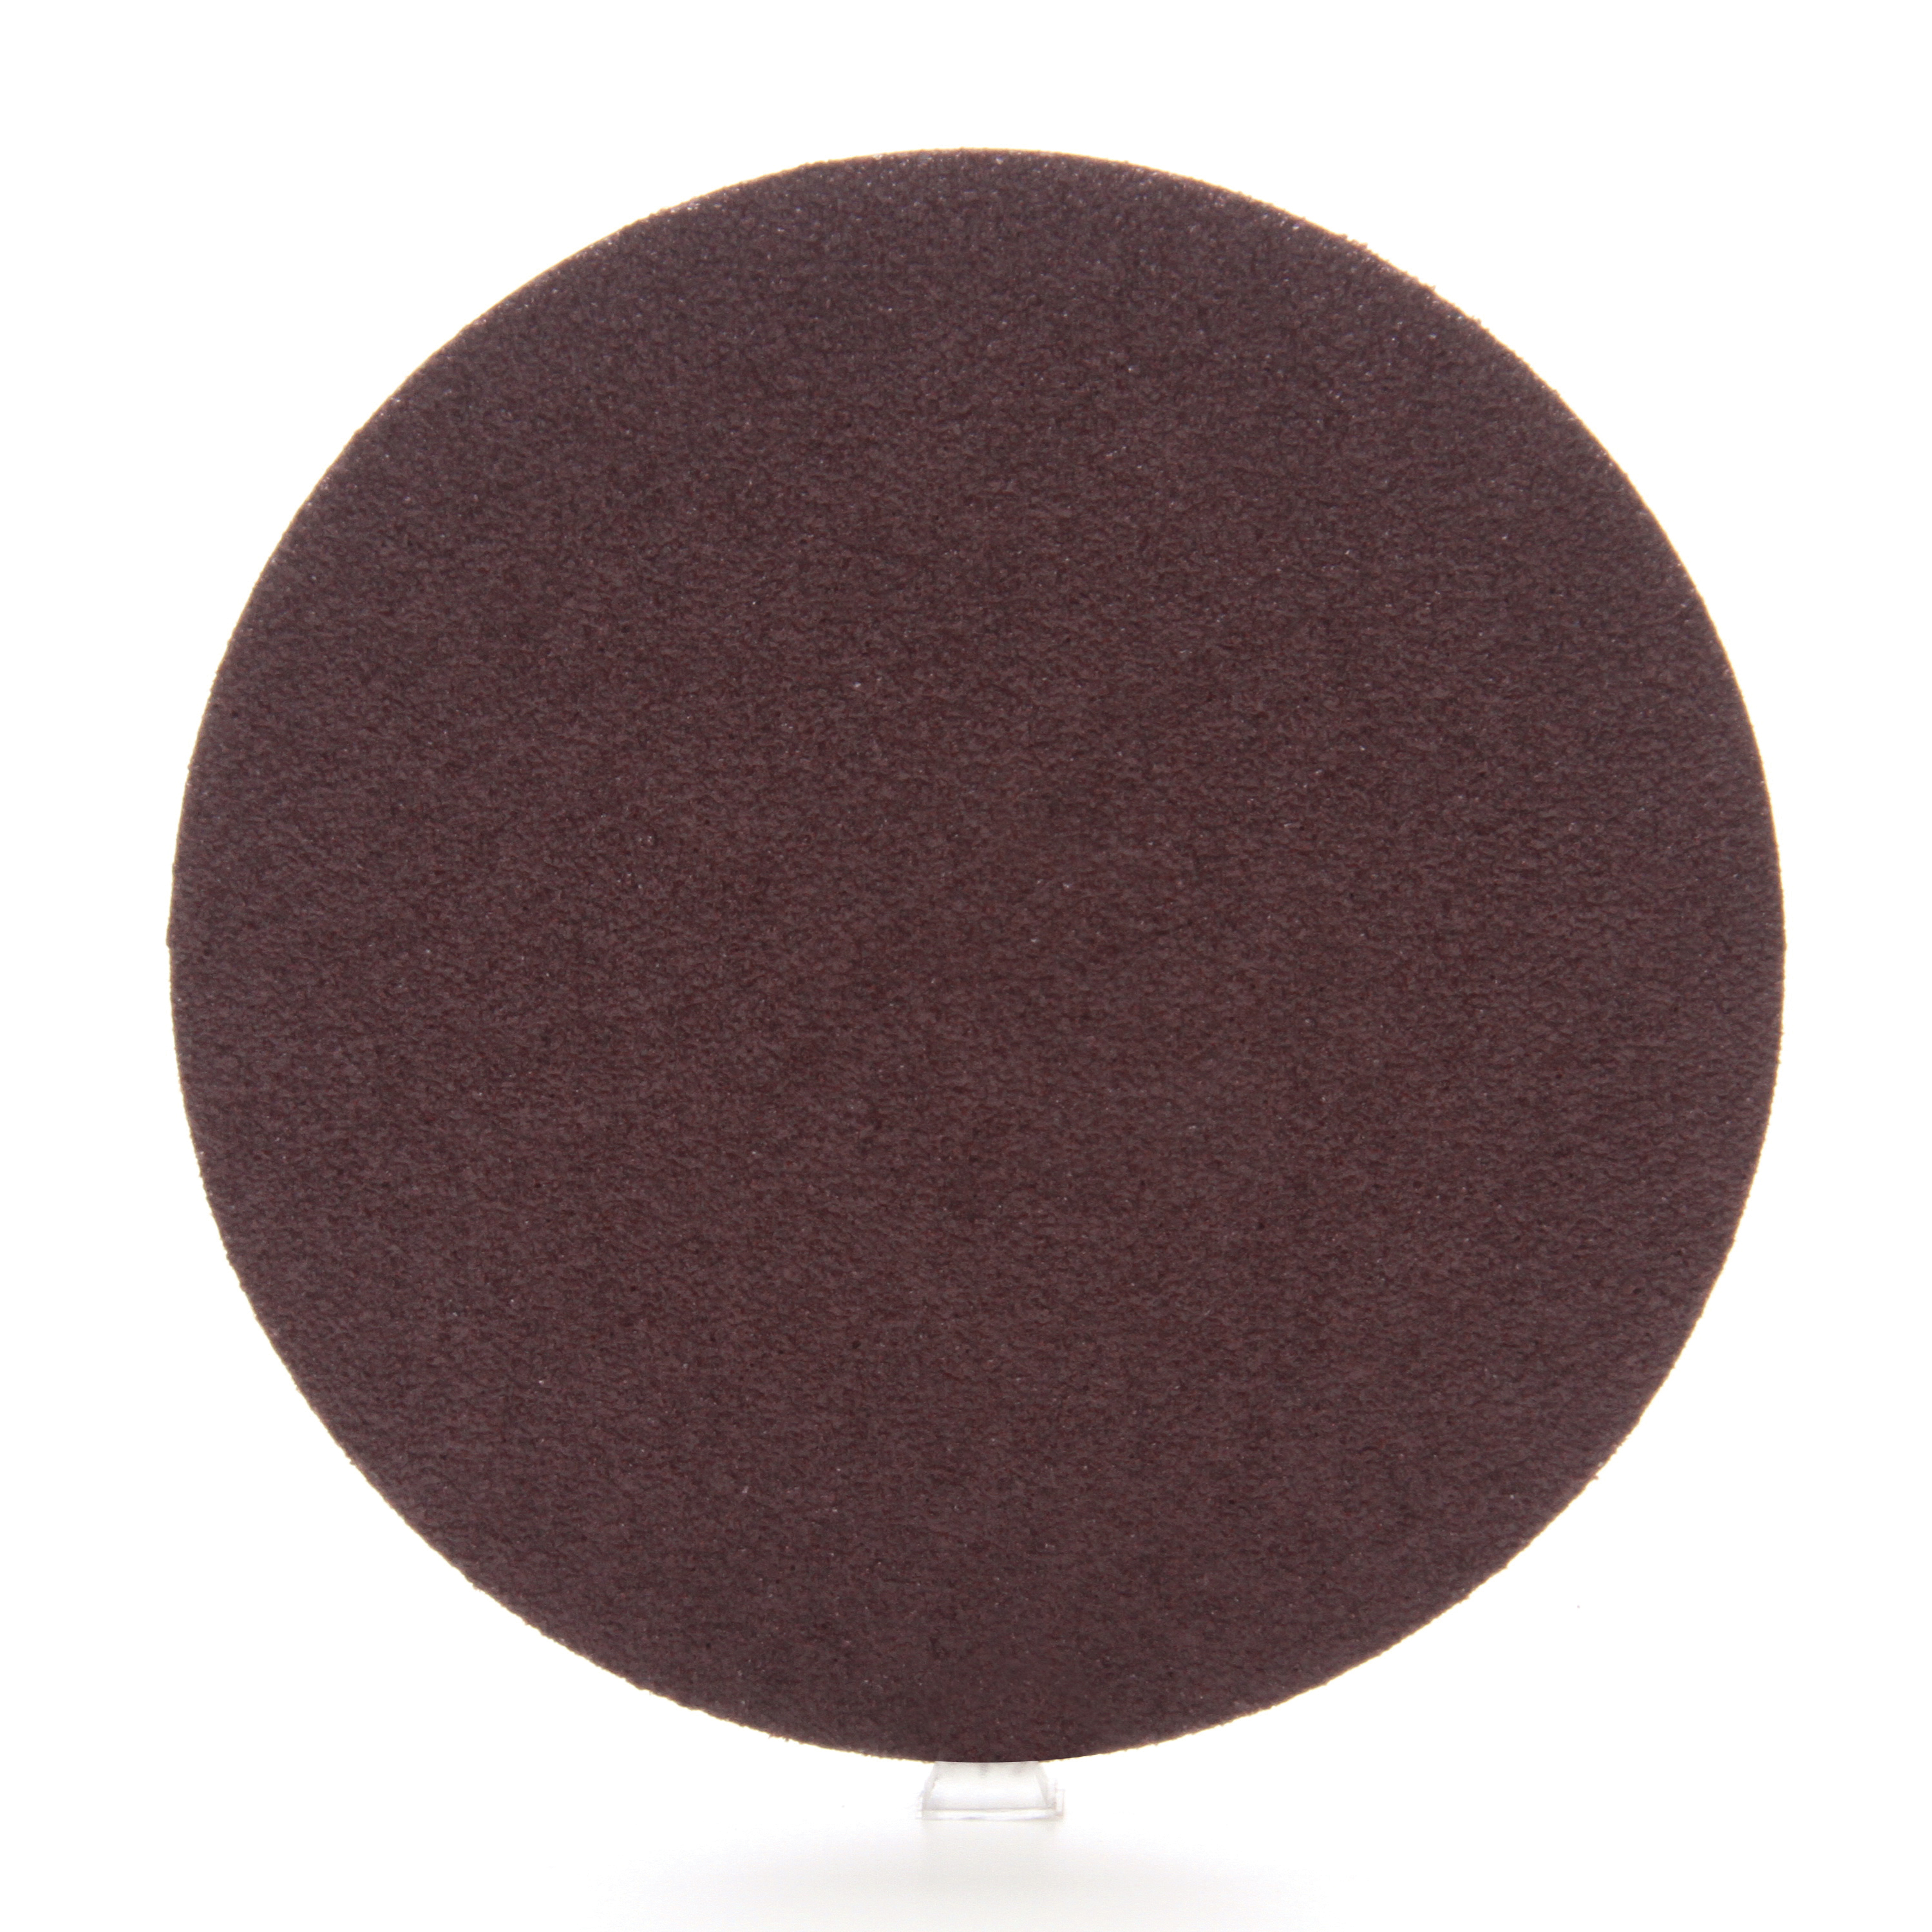 3M™ 051144-21731 Heavy Duty PSA Close Coated Abrasive Disc, 6 in Dia, 40 Grit, Coarse Grade, Aluminum Oxide Abrasive, Cloth Backing